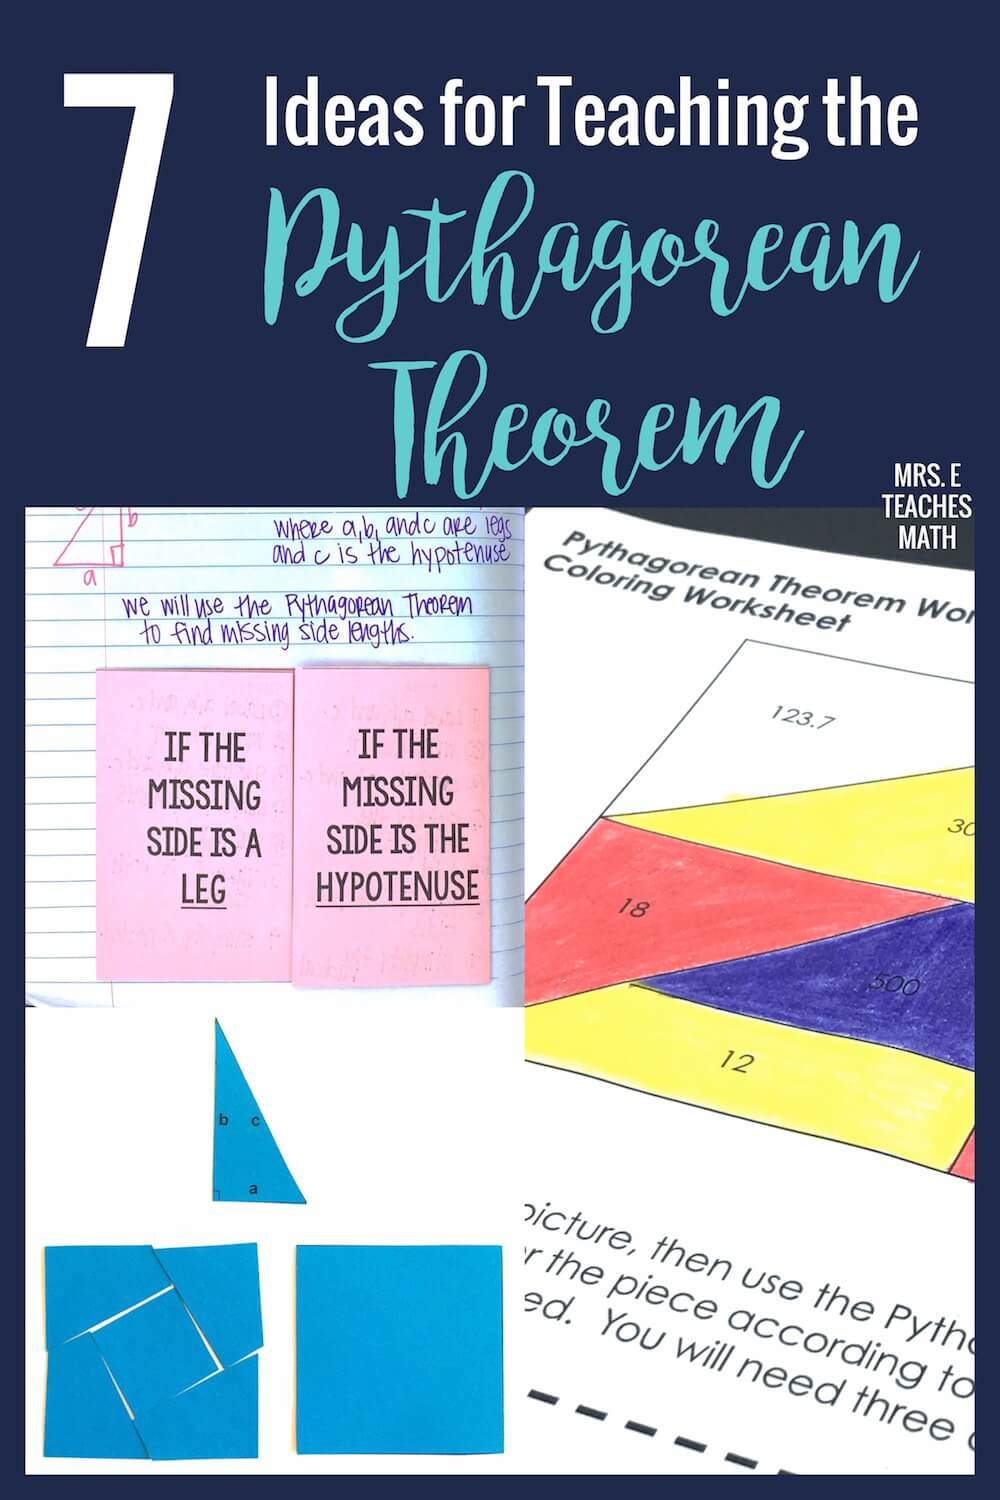 Punnett Square Practice Worksheet Middle School Teaching Proofs With Proof Cutout Activities  Mrs E Teaches Math Crime Scene Worksheets Excel with Numbers Matching Worksheet Excel  Ideas For Teaching The Pythagorean Theorem Worksheet On Number Patterns